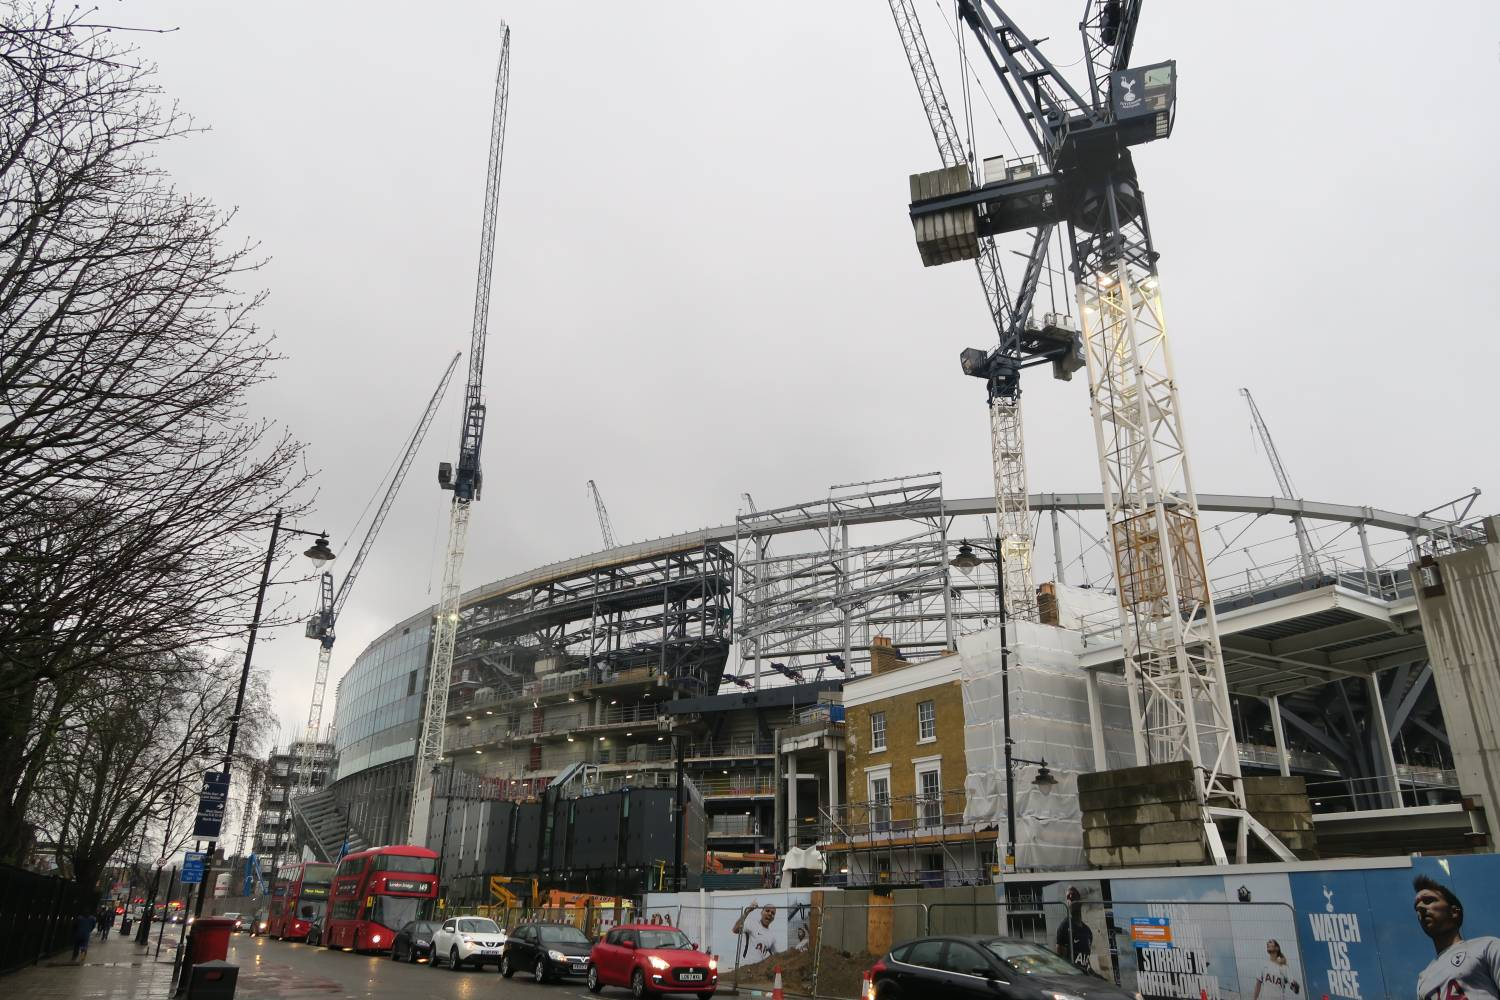 Cranes and construction at New Spurs Stadium